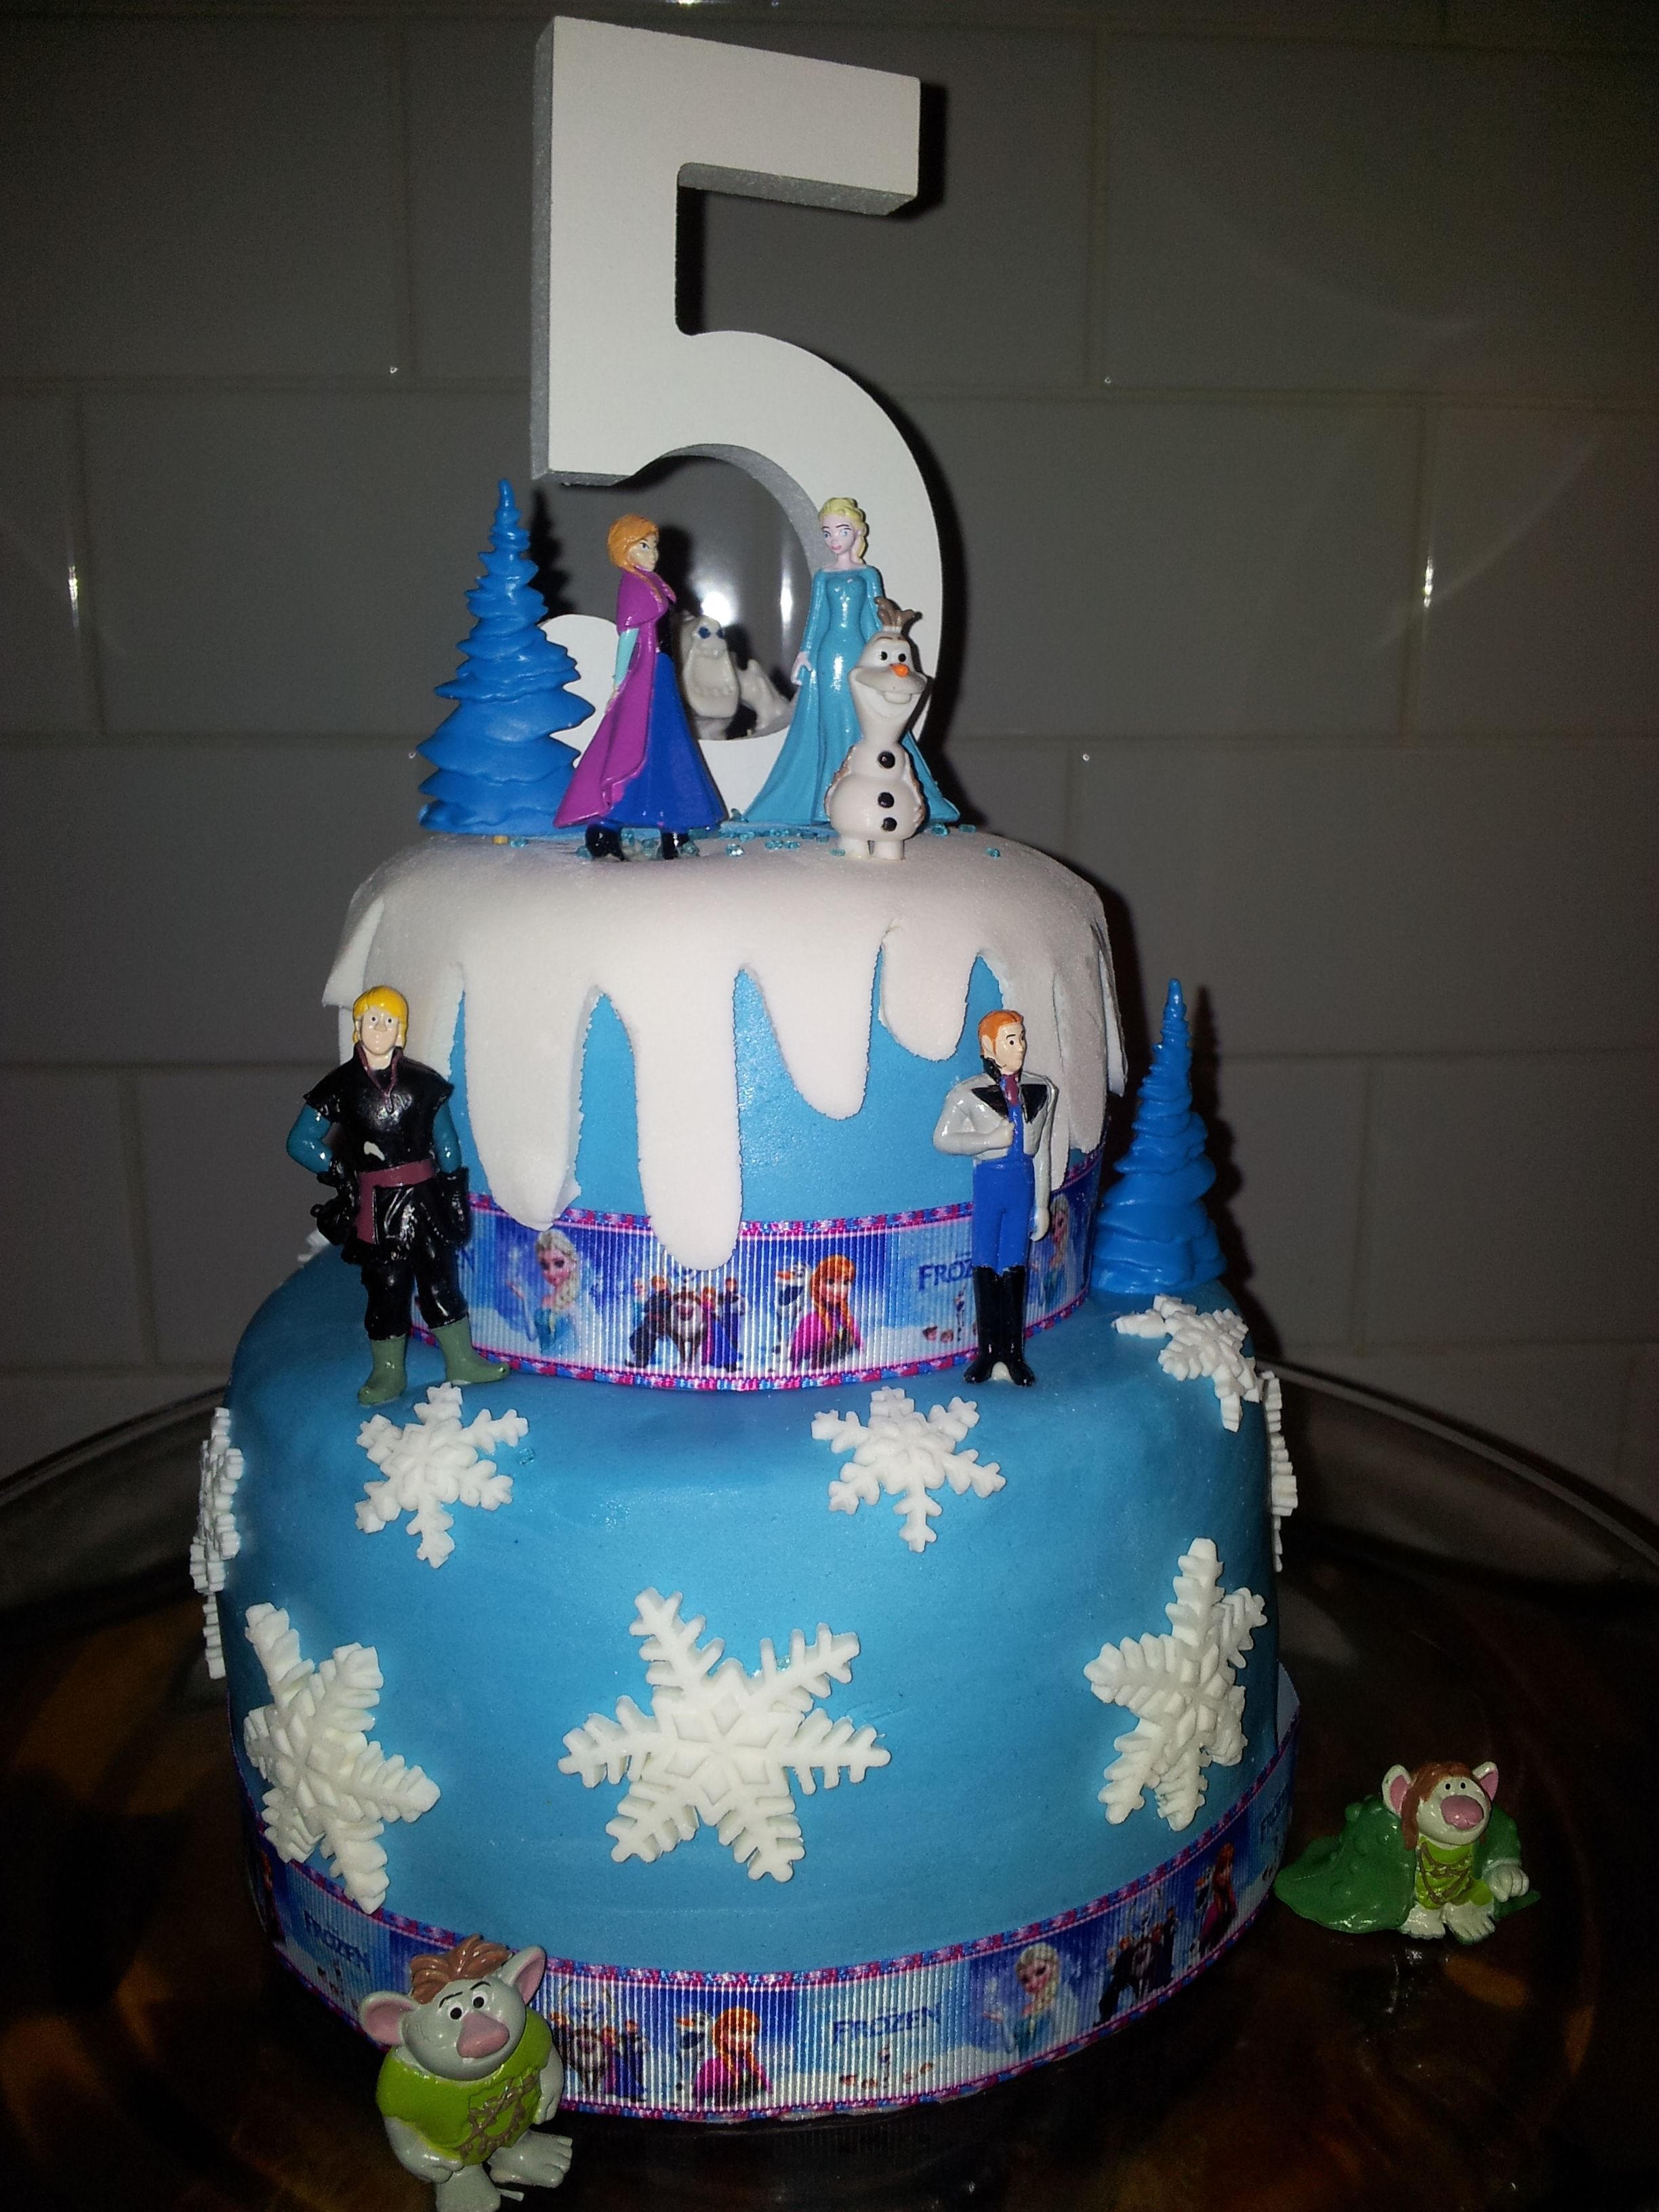 Miraculous Disney Frozen Birthday Cake Made For My 5 Year Old Made Easy With Funny Birthday Cards Online Benoljebrpdamsfinfo